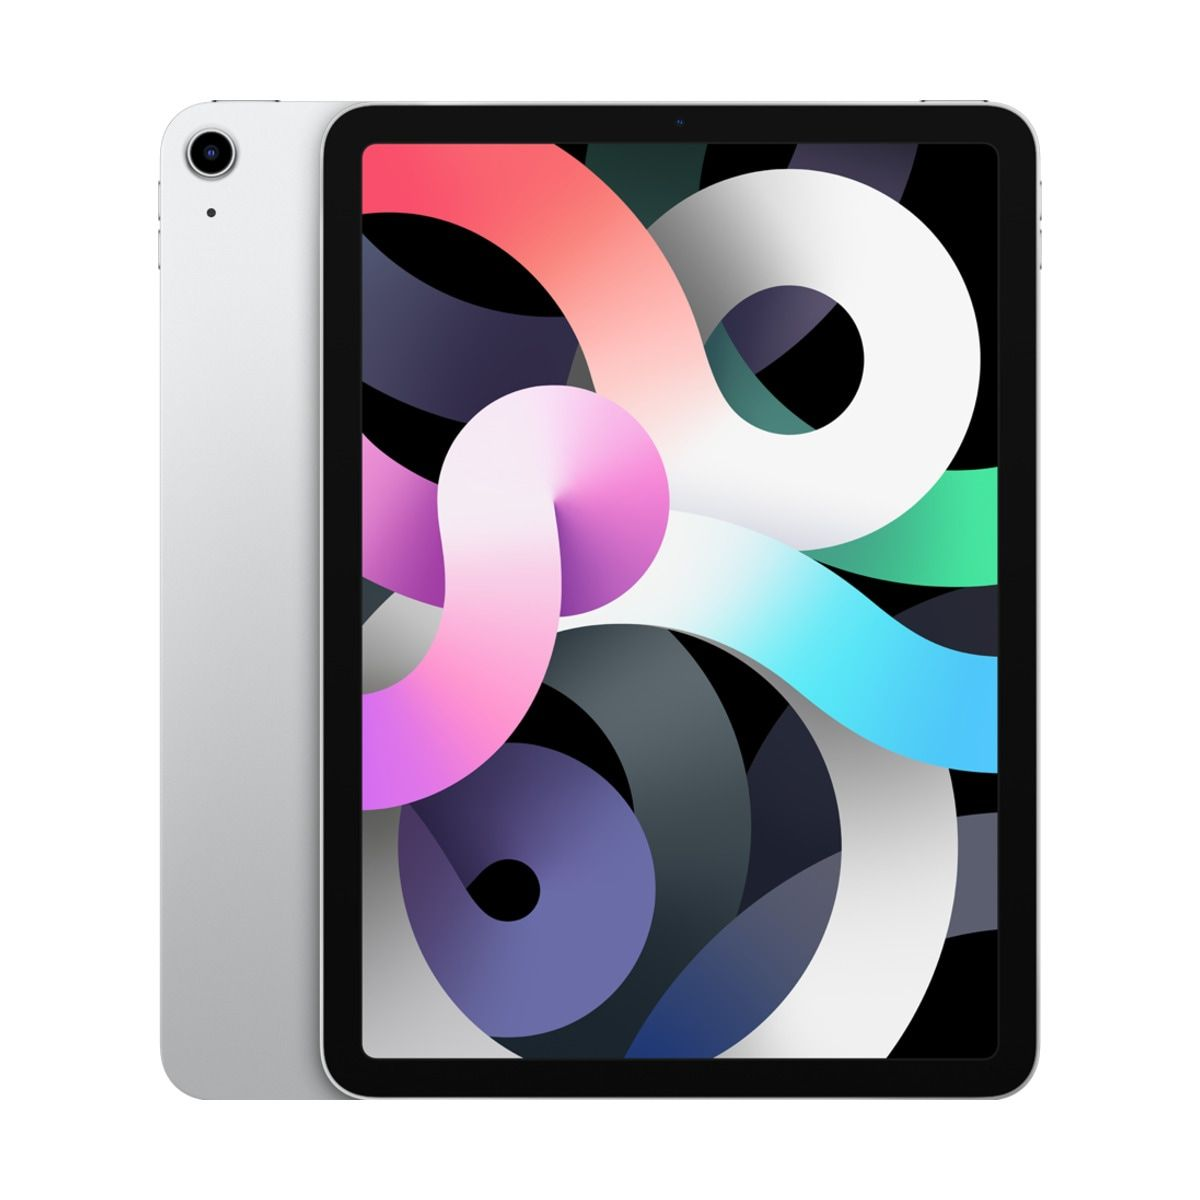 iPad Air Wi-Fi 64GB - Silver / SK